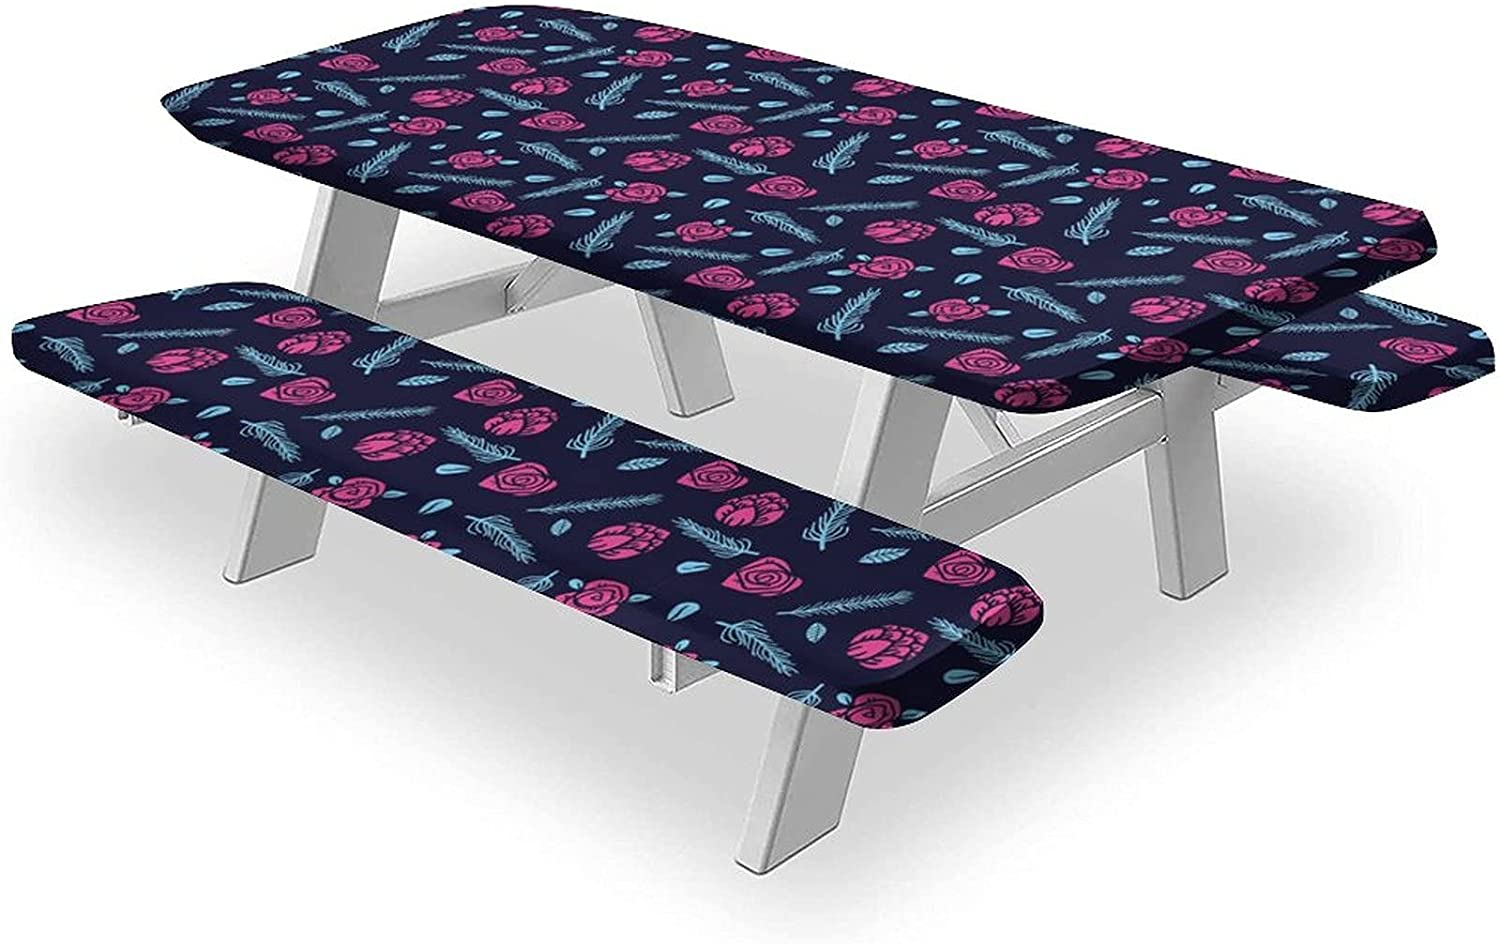 Memphis Tablecloths 3PCS Max 57% OFF Picnic Table Fl Bench and Cover High quality